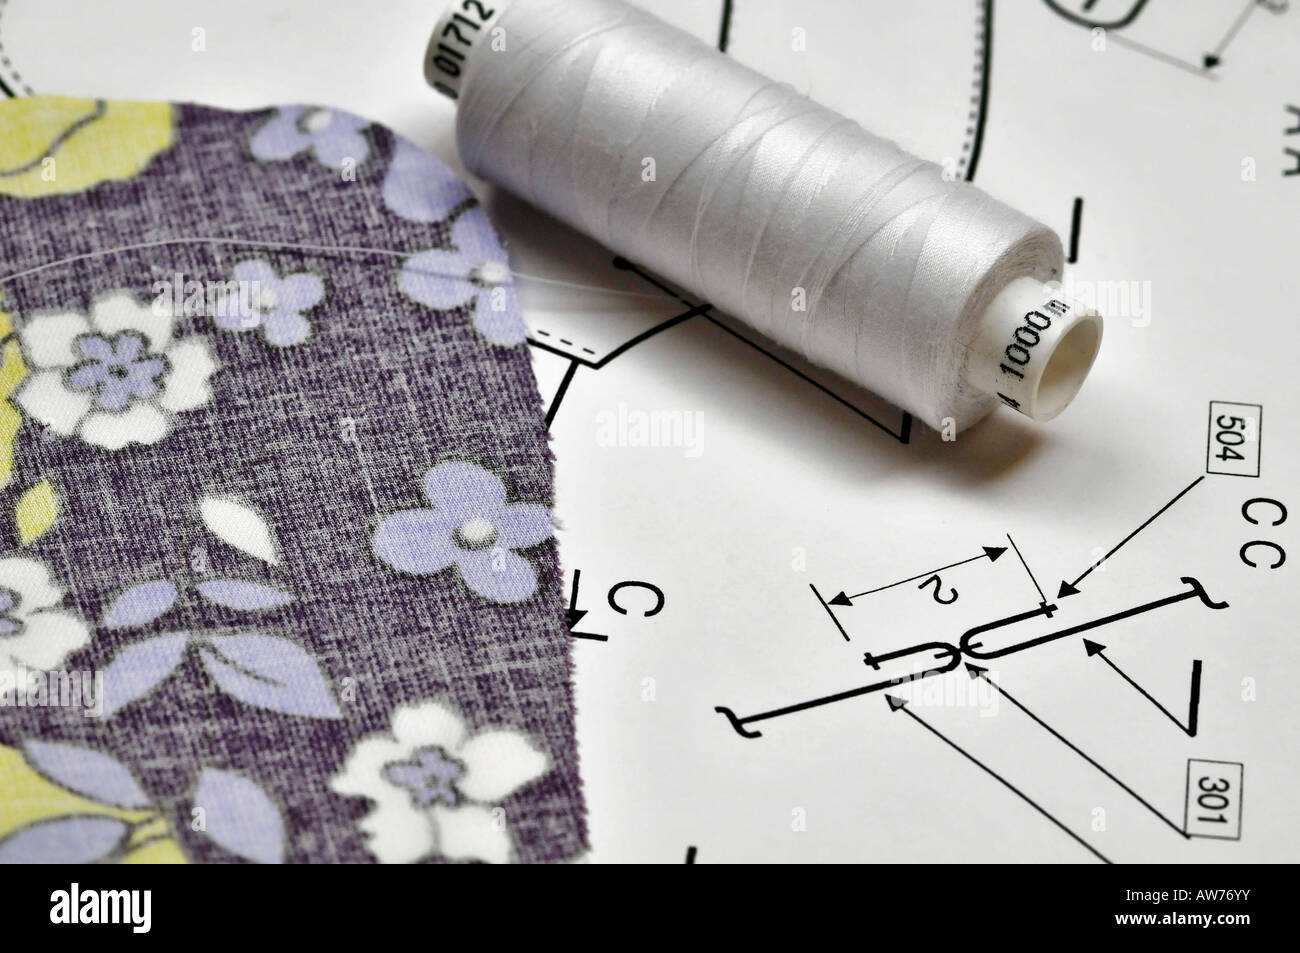 Cloth  and bobbin on a pattern - Stock Image